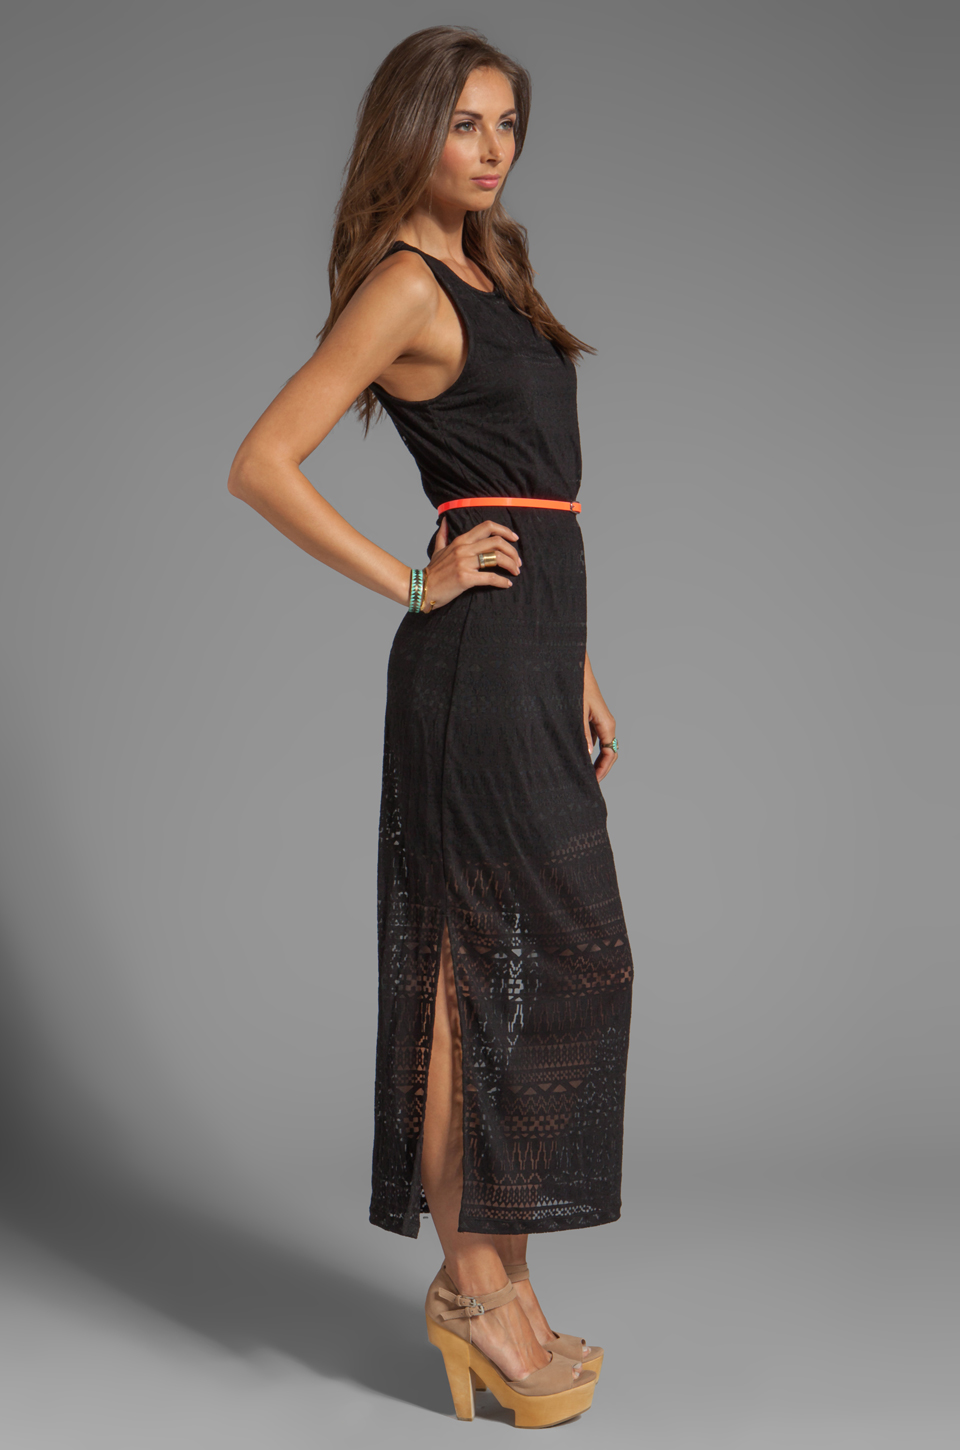 Dolce Vita Lynnie Jersey Burnout Maxi Dress in Black